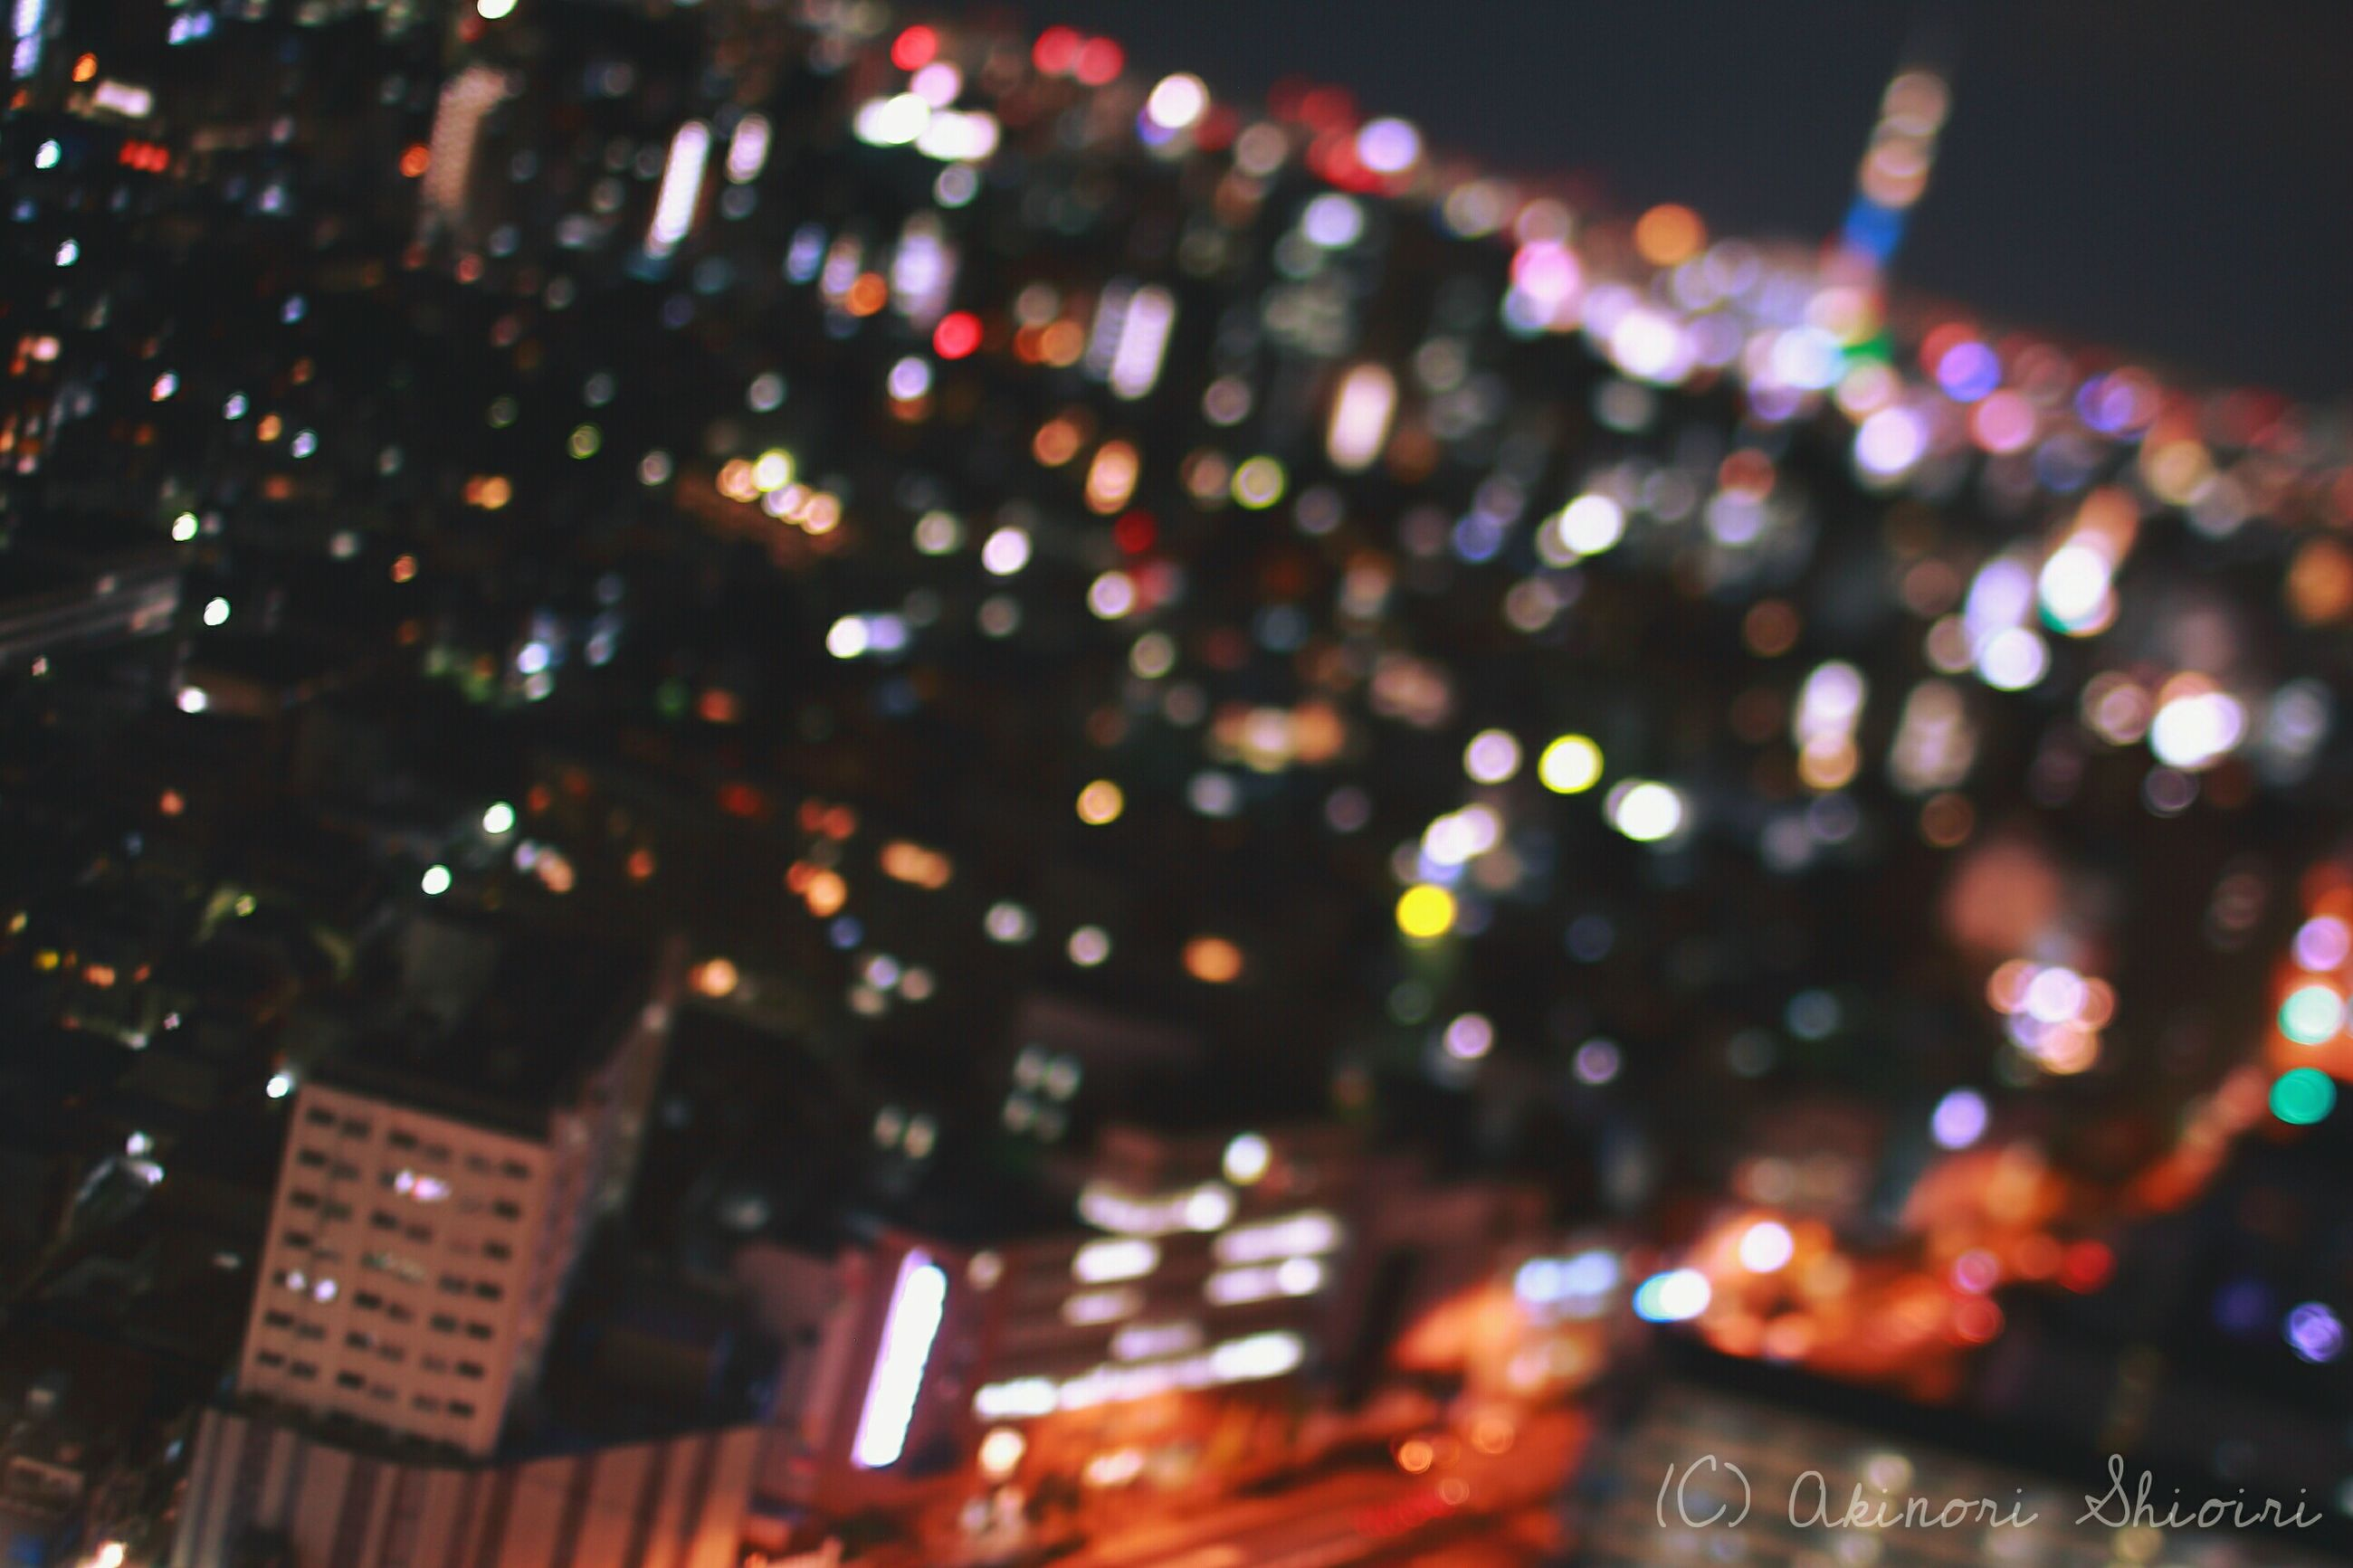 illuminated, night, defocused, lighting equipment, city, light - natural phenomenon, building exterior, glowing, architecture, multi colored, built structure, light, indoors, no people, selective focus, high angle view, dark, city life, celebration